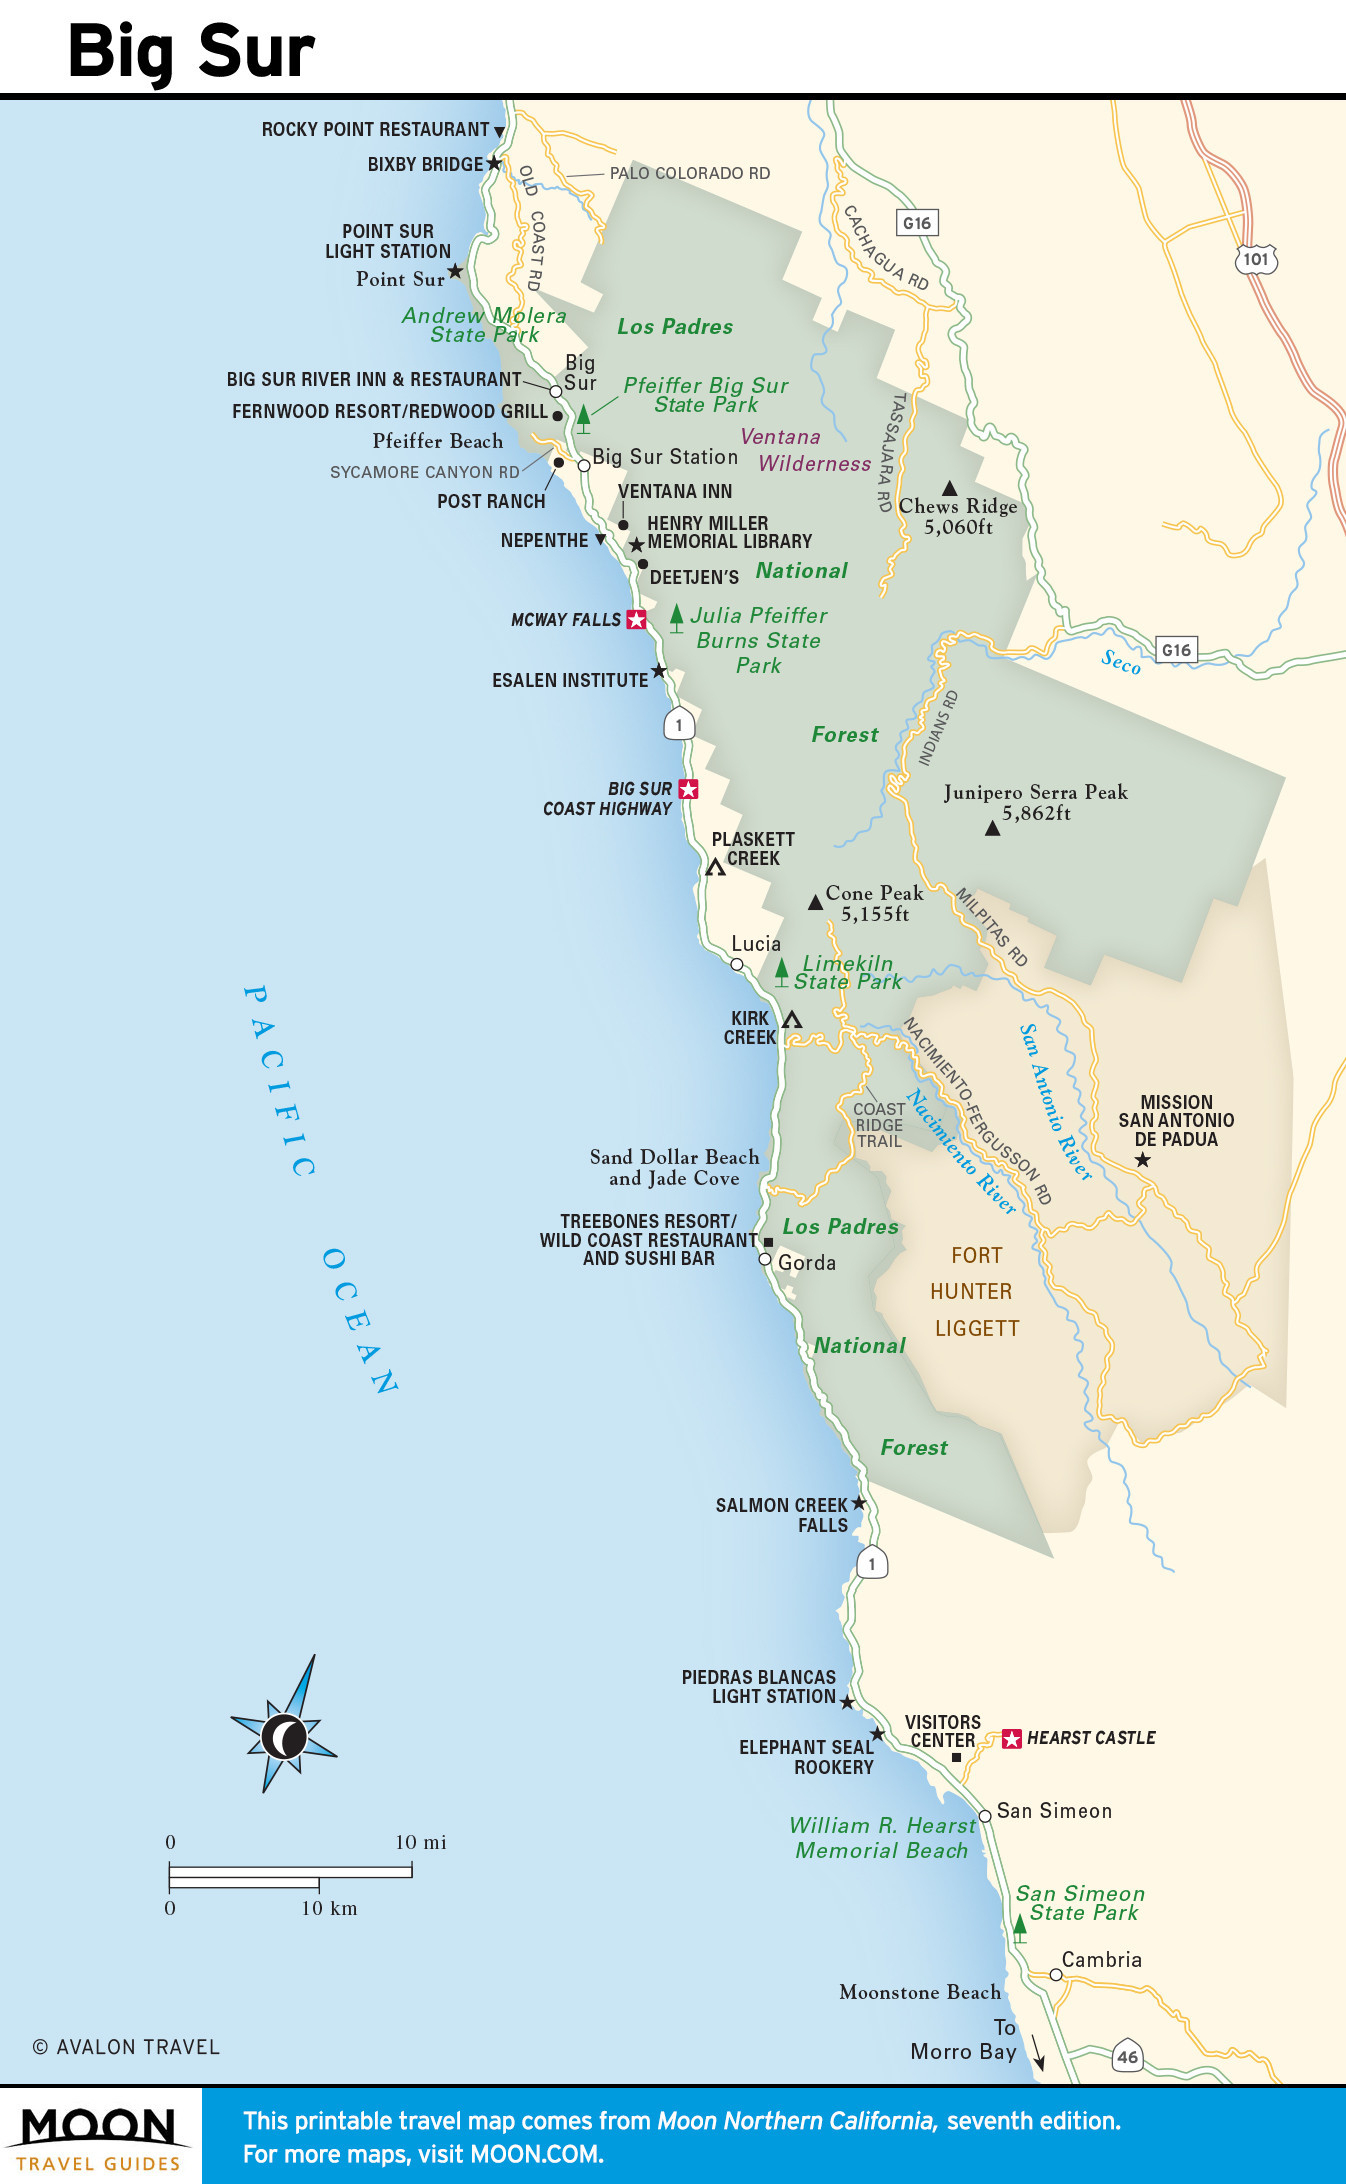 Cdcr Prison Map Detailed California State Prison Locations Map - California Prison Locations Map